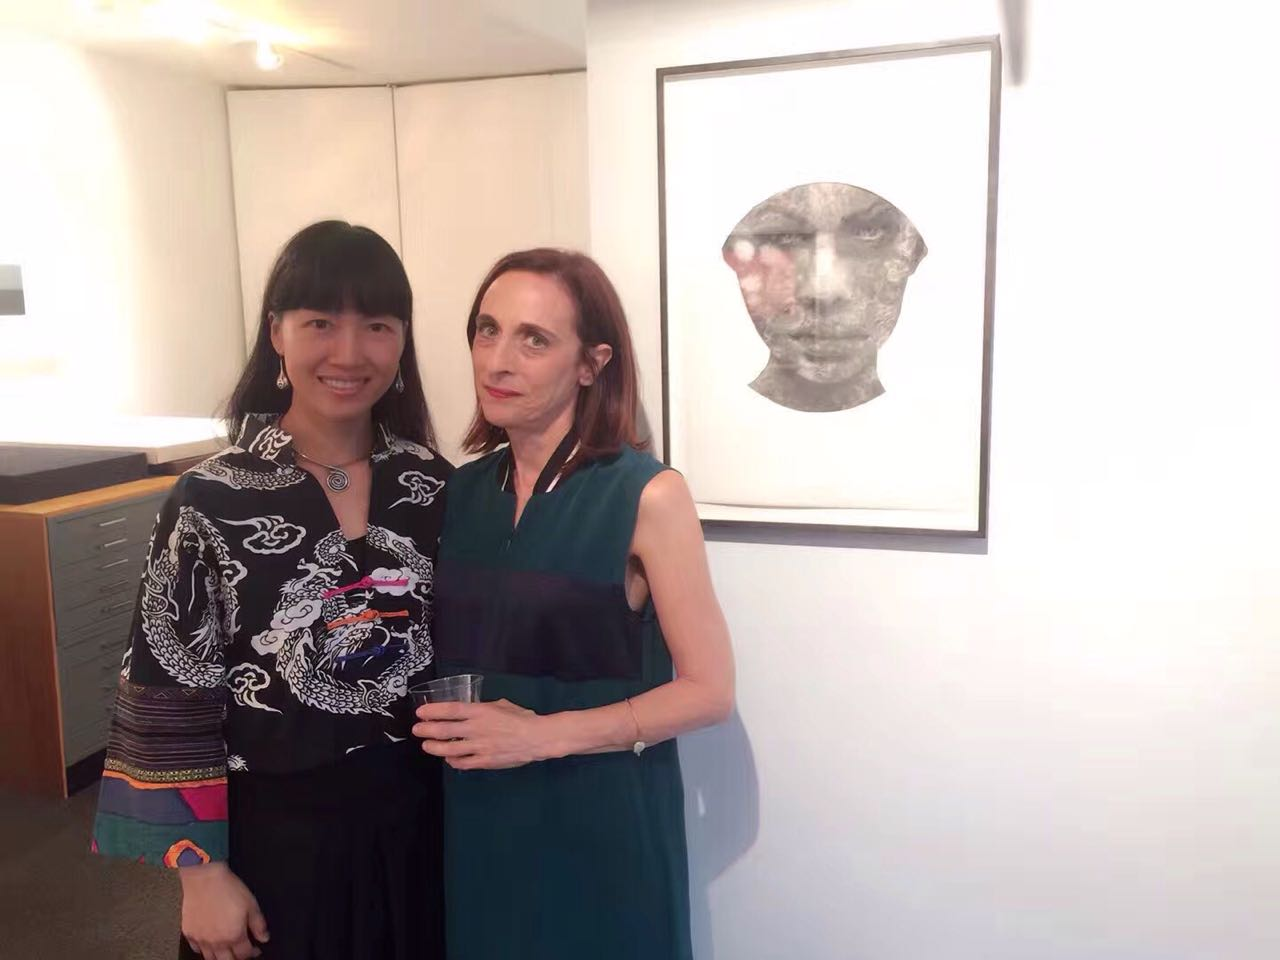 Opening Night Sept. 14, 2017 : Shanlin Ye and Director Dru Arstark with Shanlin's Reflection Series. Watercolor on Paper. Produced in 2017